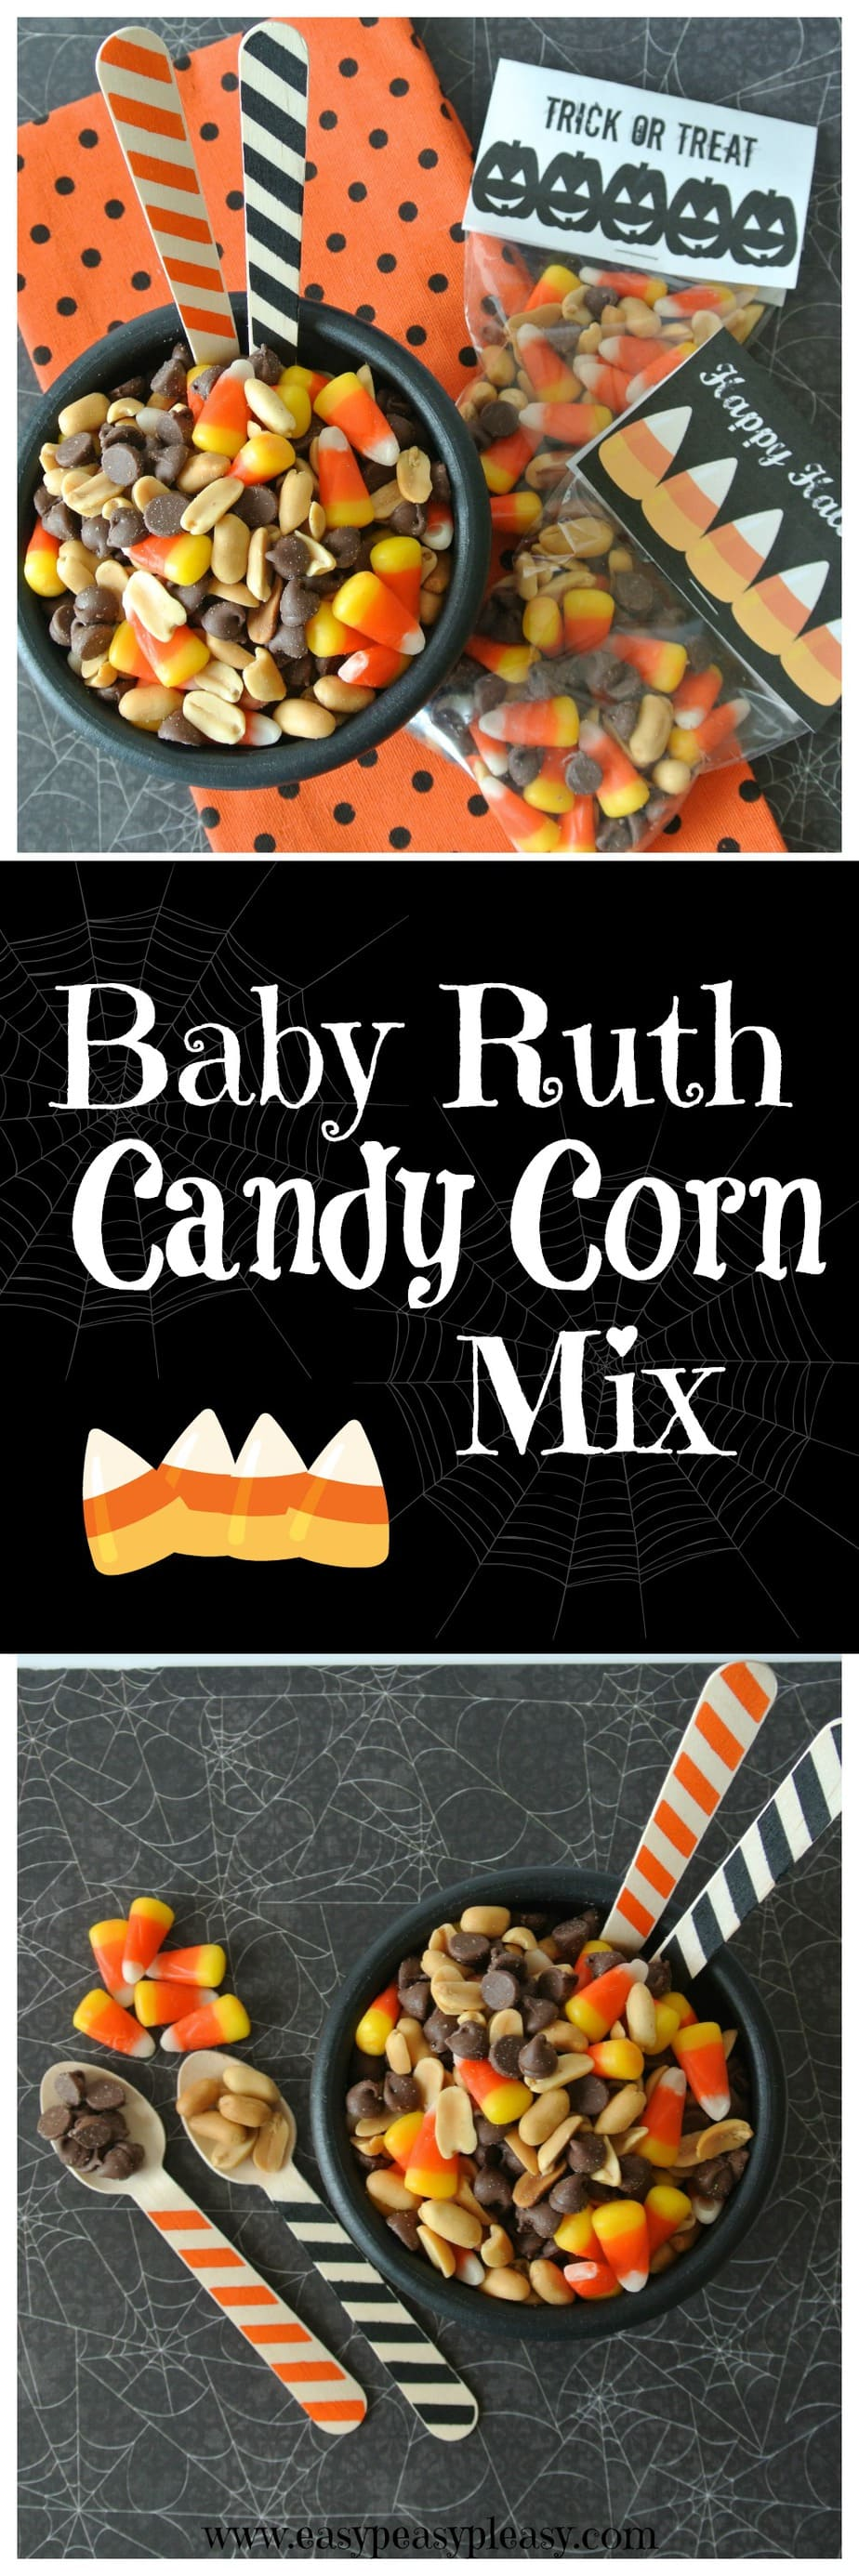 Baby Ruth Candy Corn Mix is the perfect fall snack mix! Easy and only 3 ingredients. It taste just like a Baby Ruth.